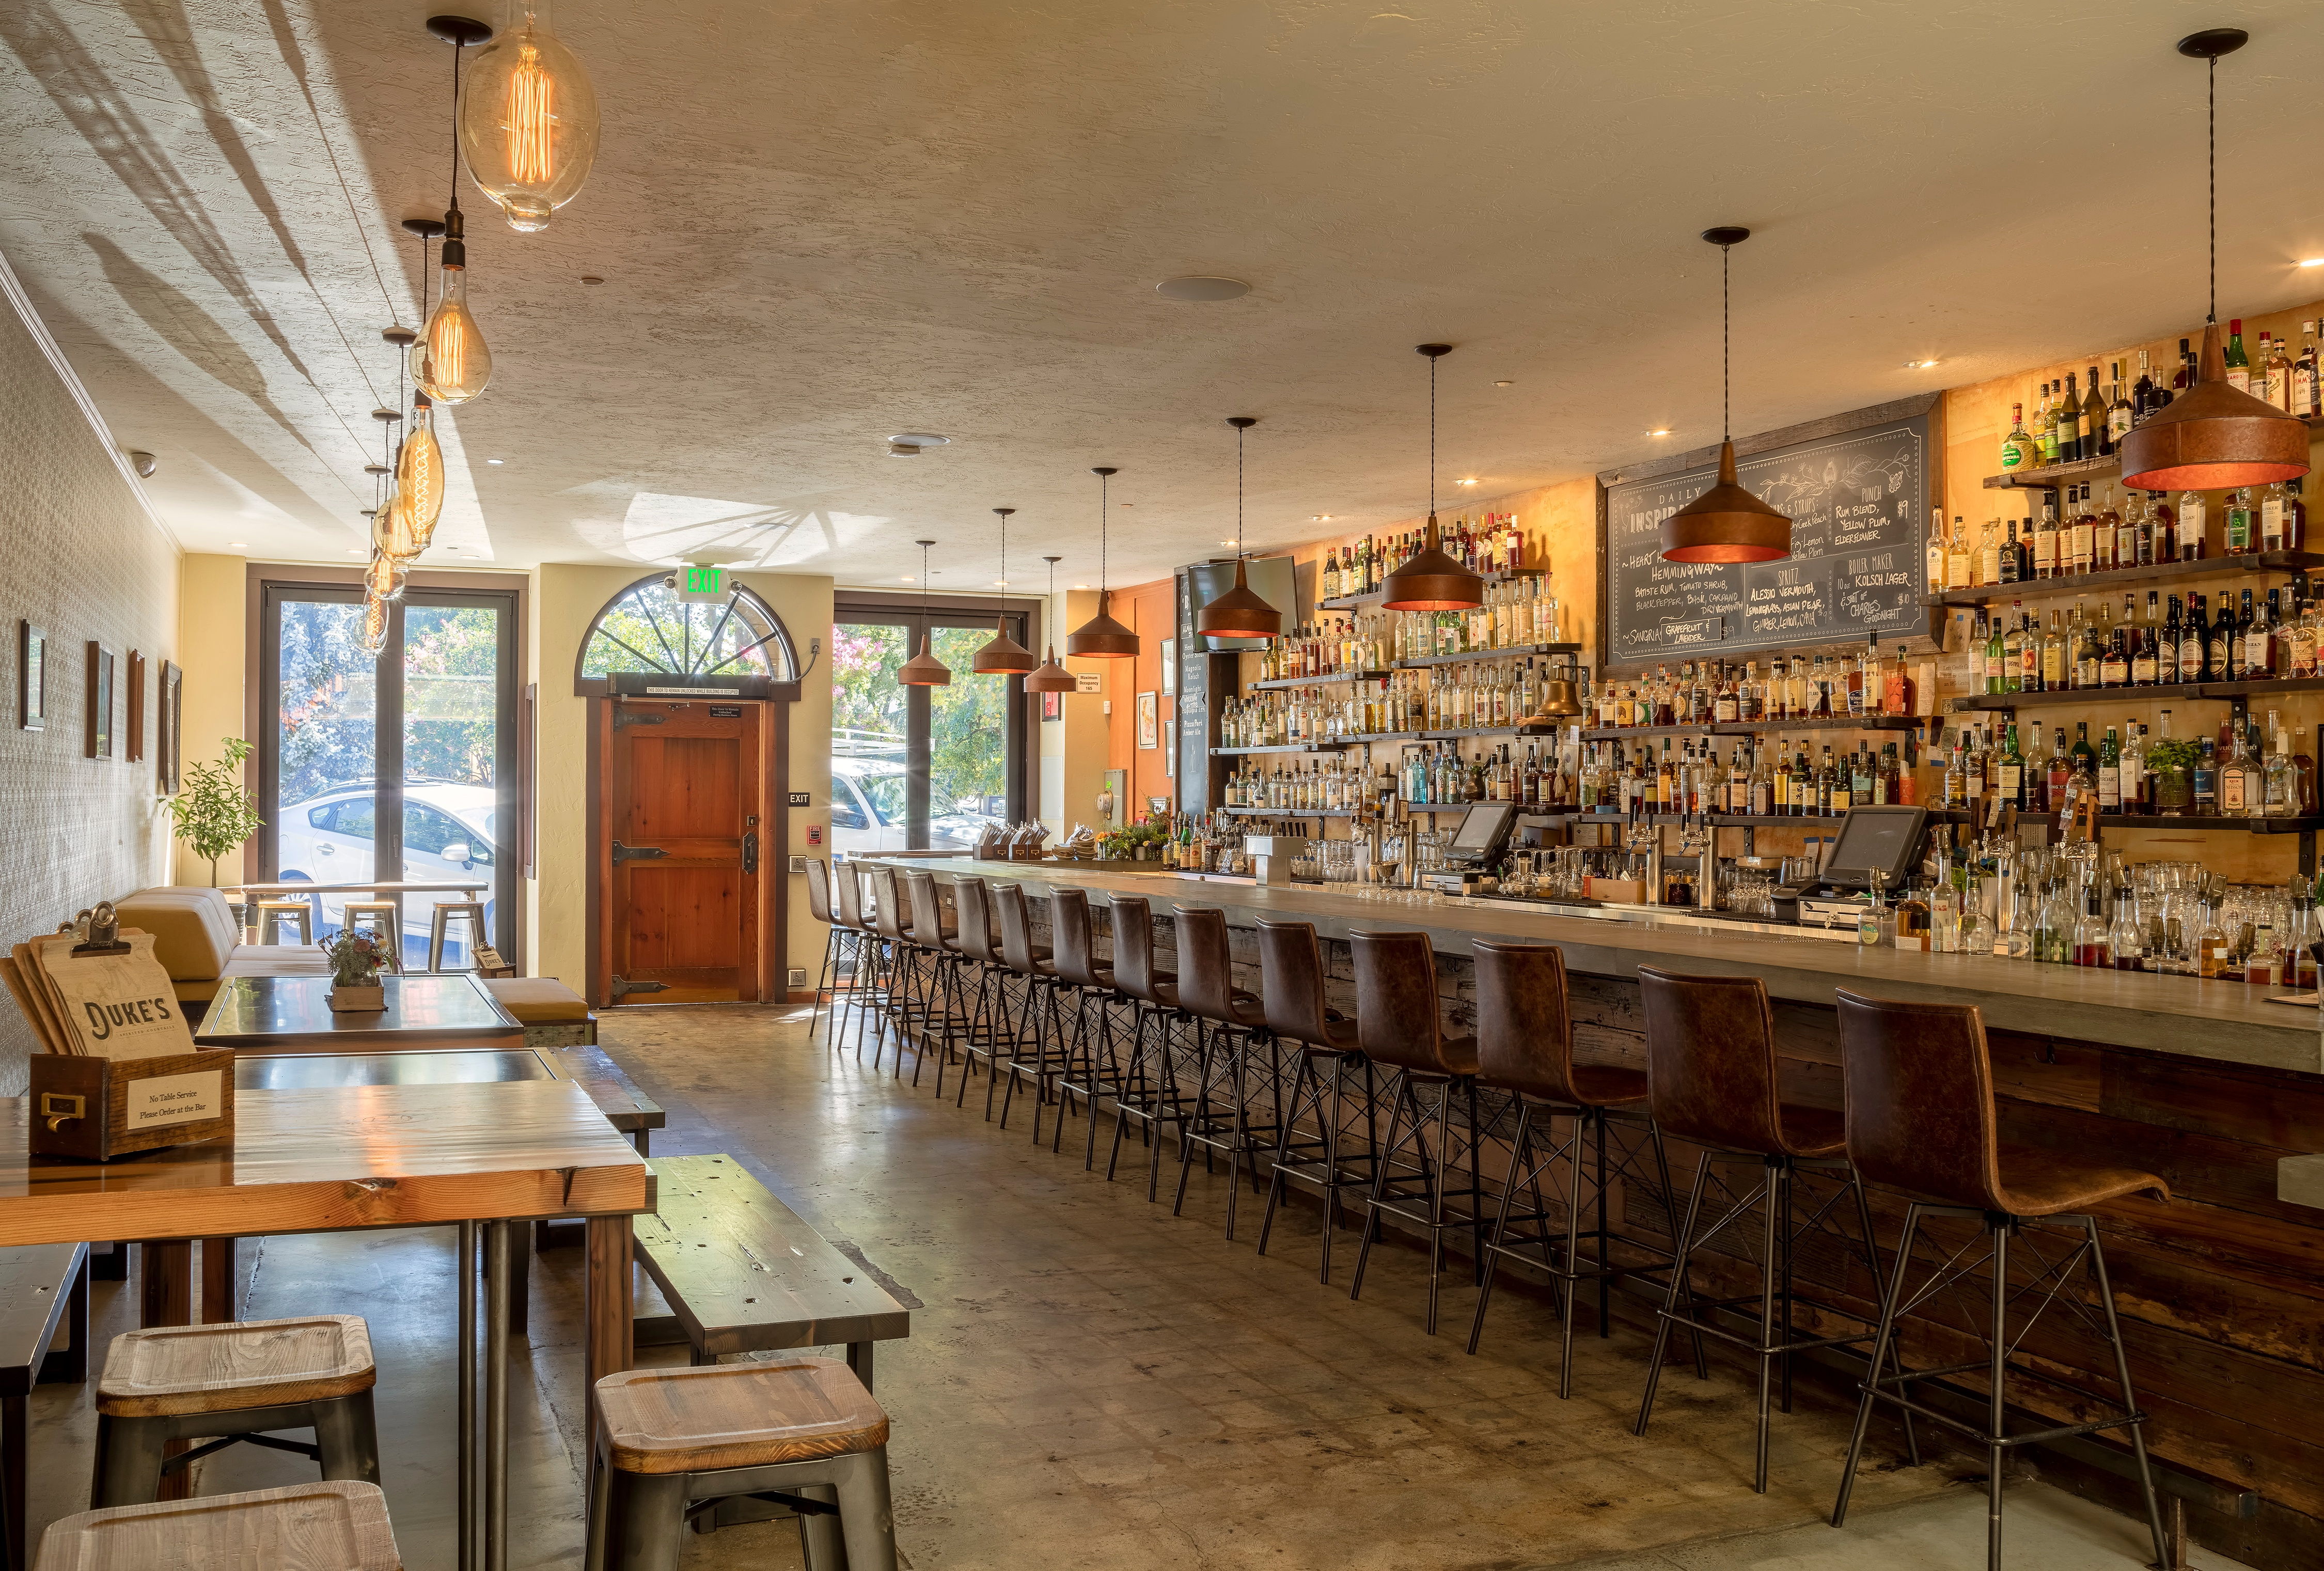 Duke's Bar, Nordby Construction Services